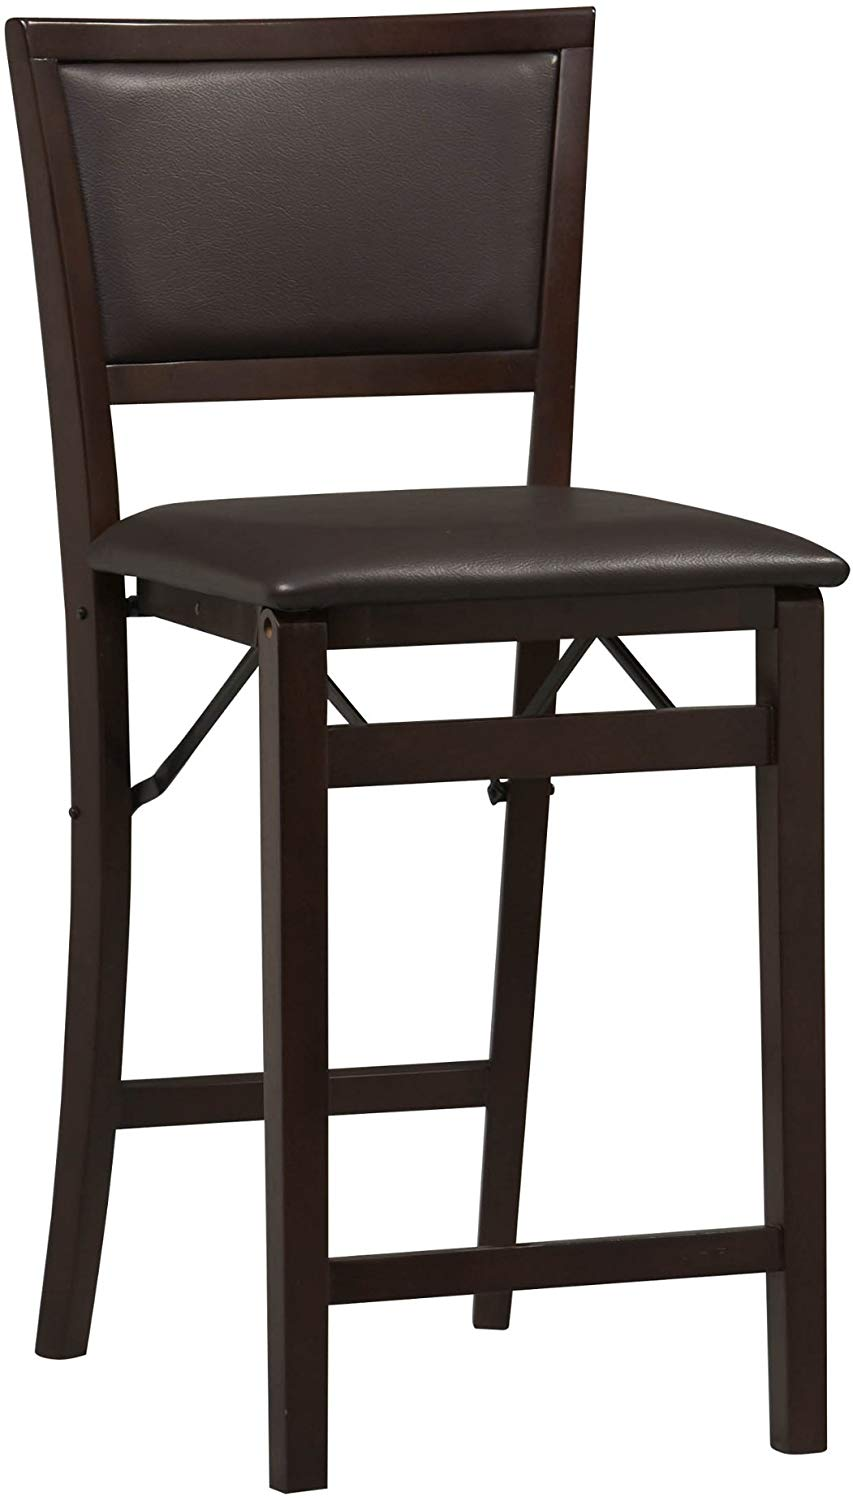 Top 10 Best Folding Bar Stools In 2020 Reviews Superads